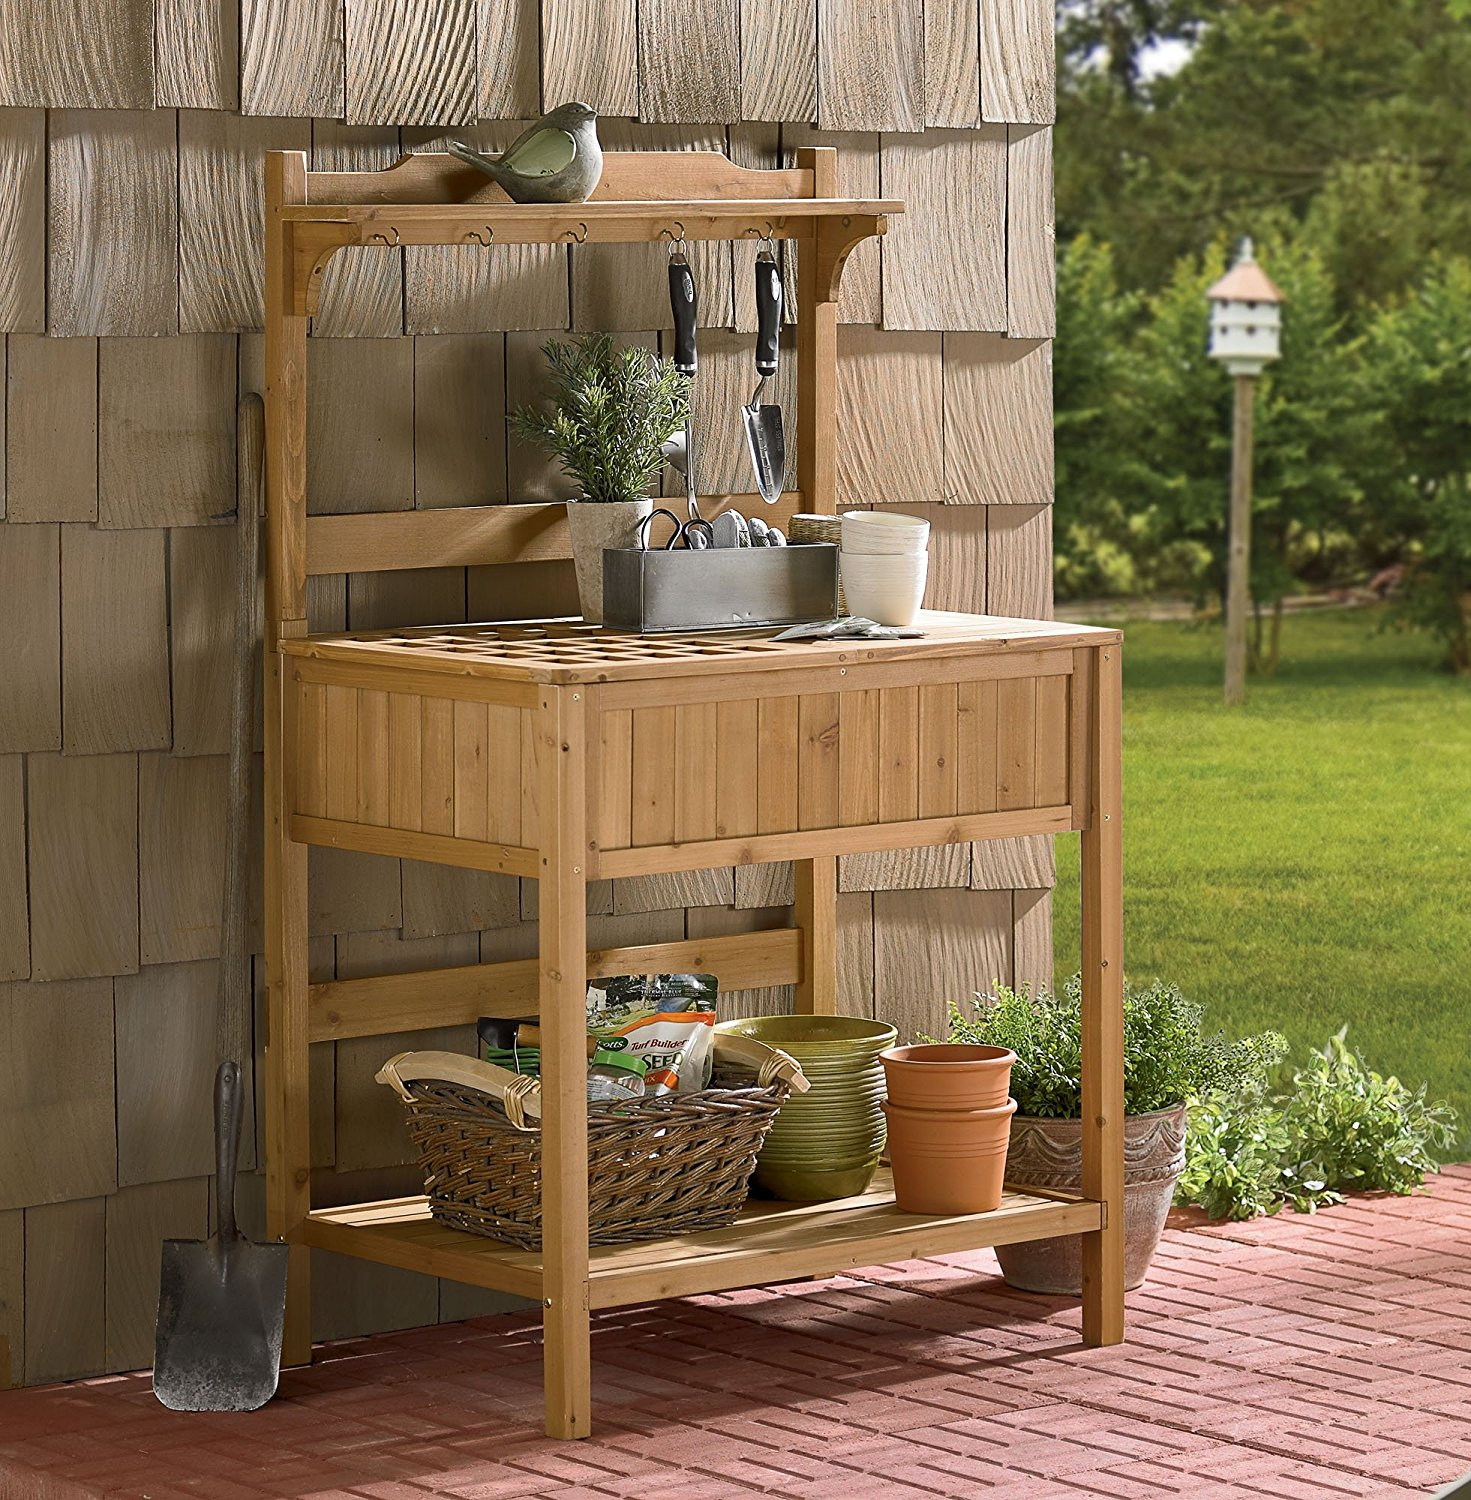 Garden Work Table Bench